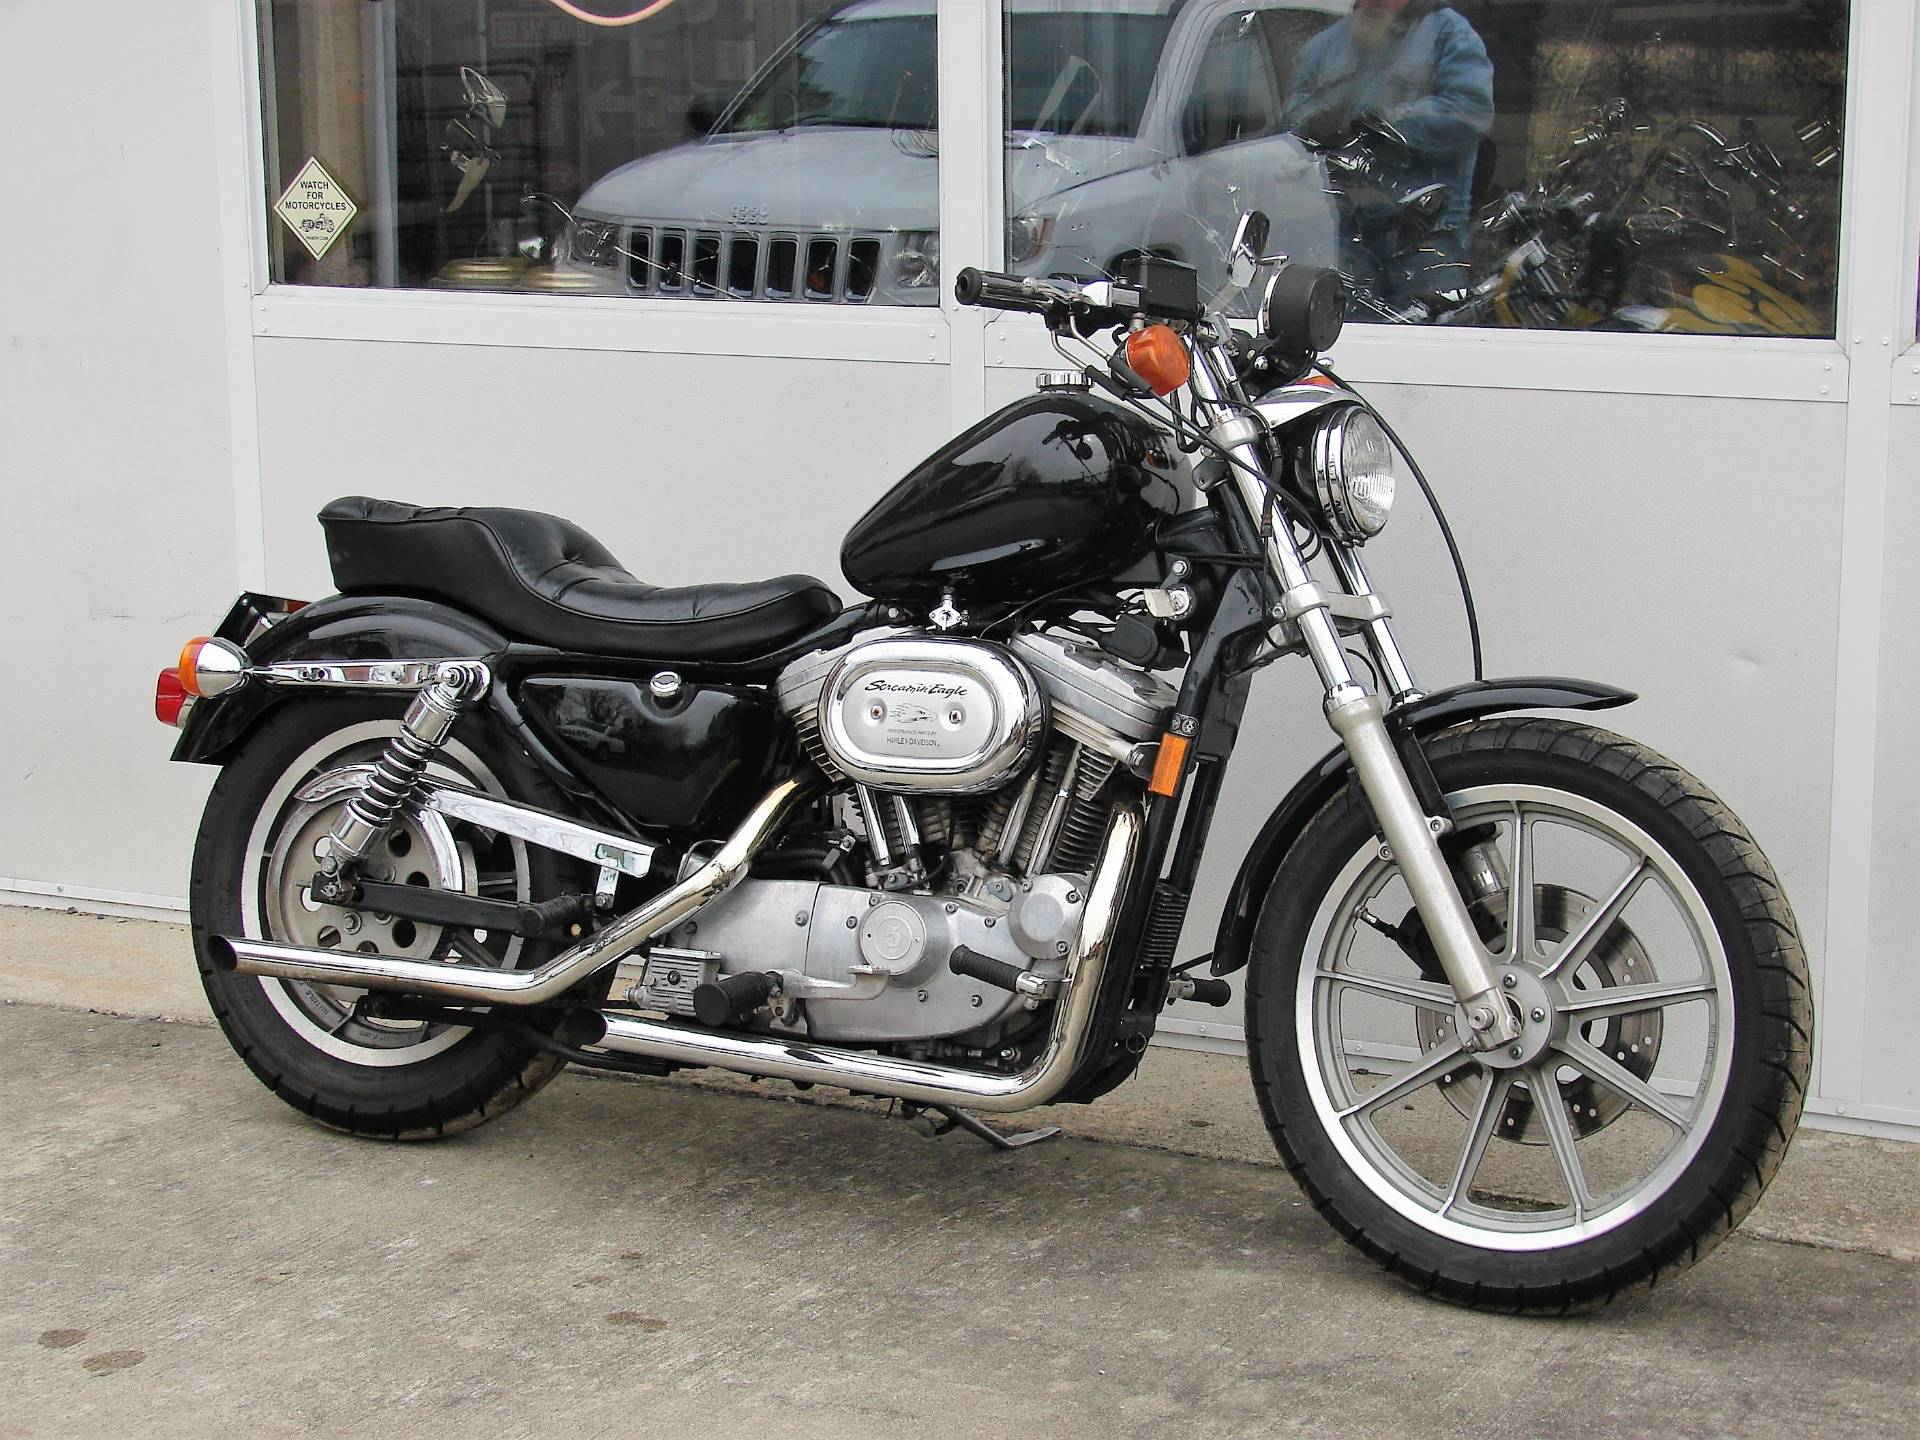 1995 Harley-Davidson Sportster 883 in Williamstown, New Jersey